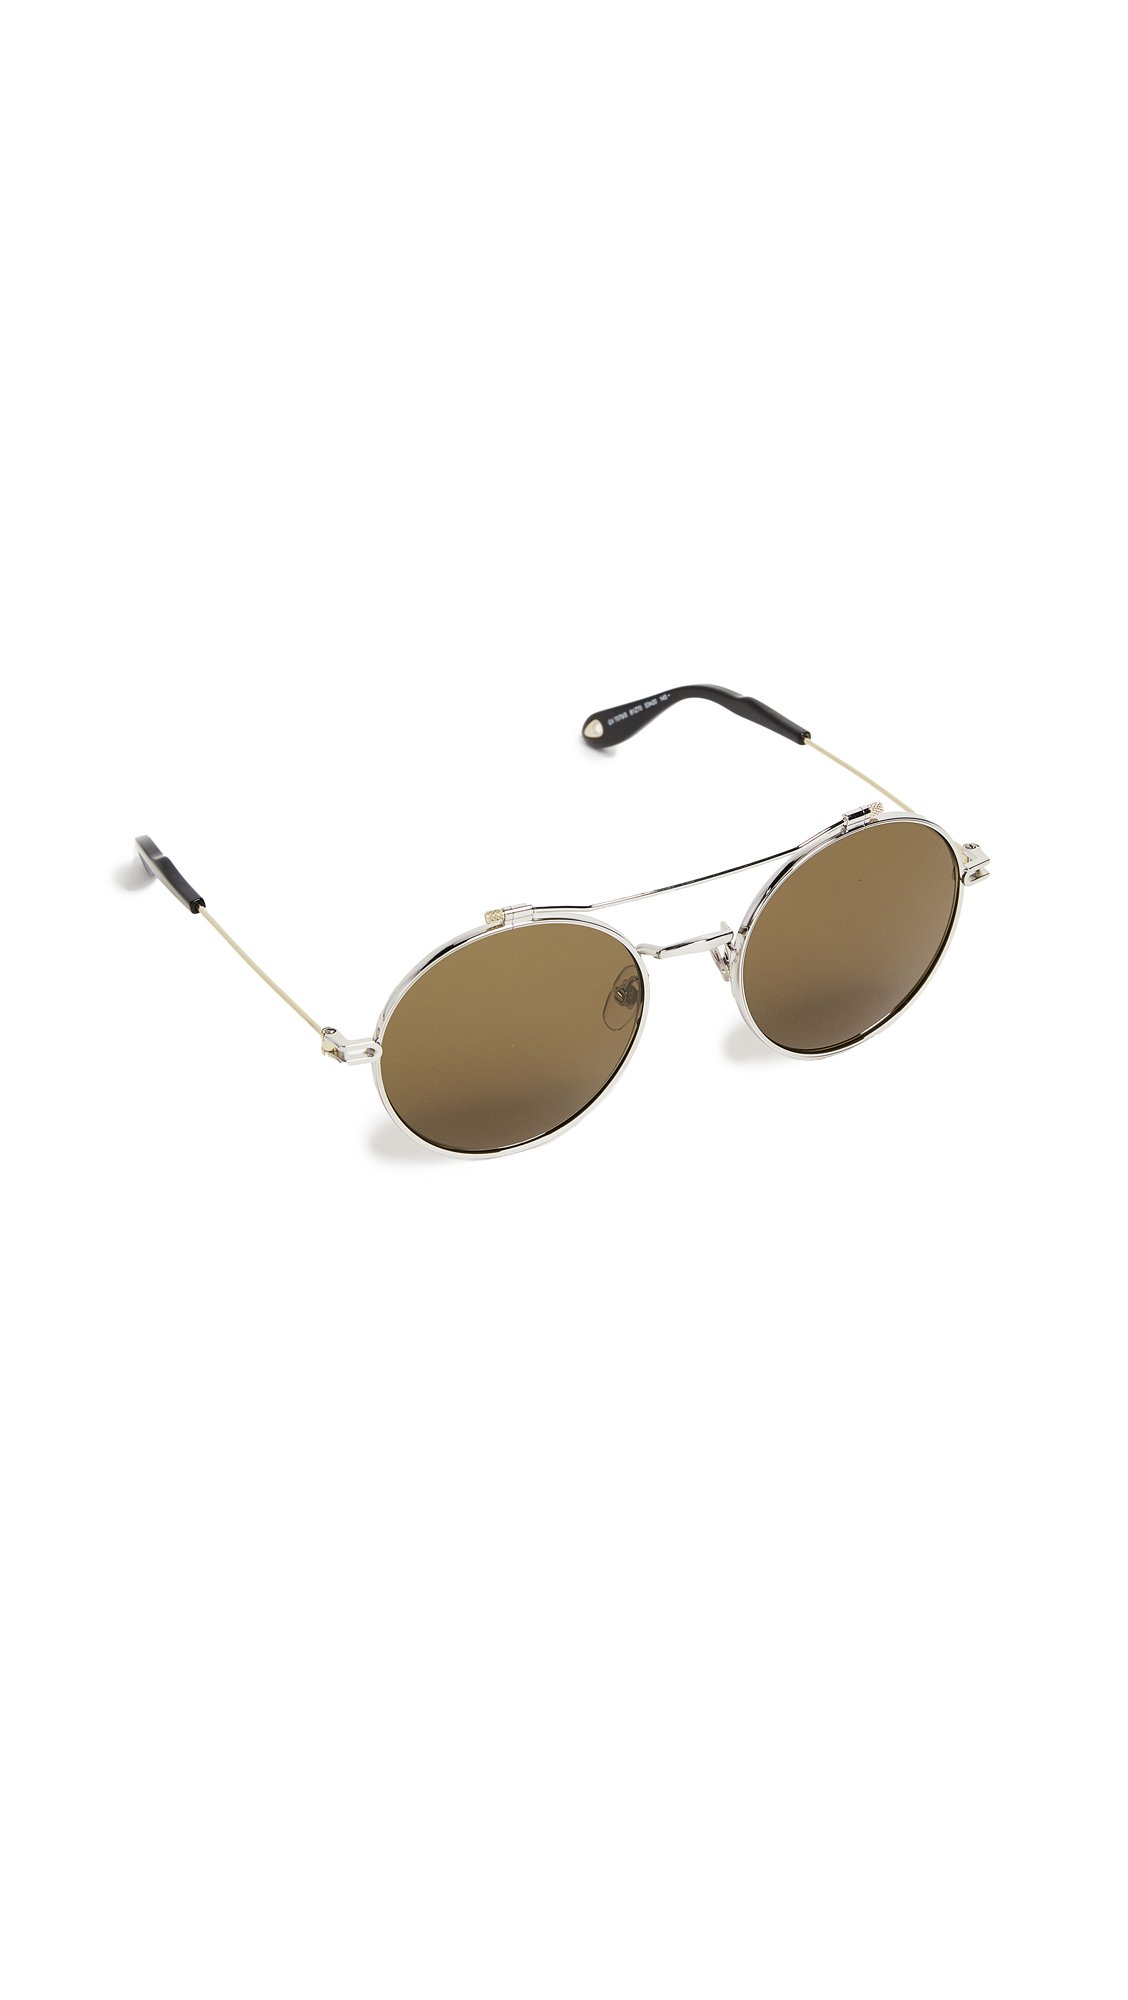 Givenchy Women's Round Browbar Sunglasses, Silver Gold/Brown, One Size by Givenchy